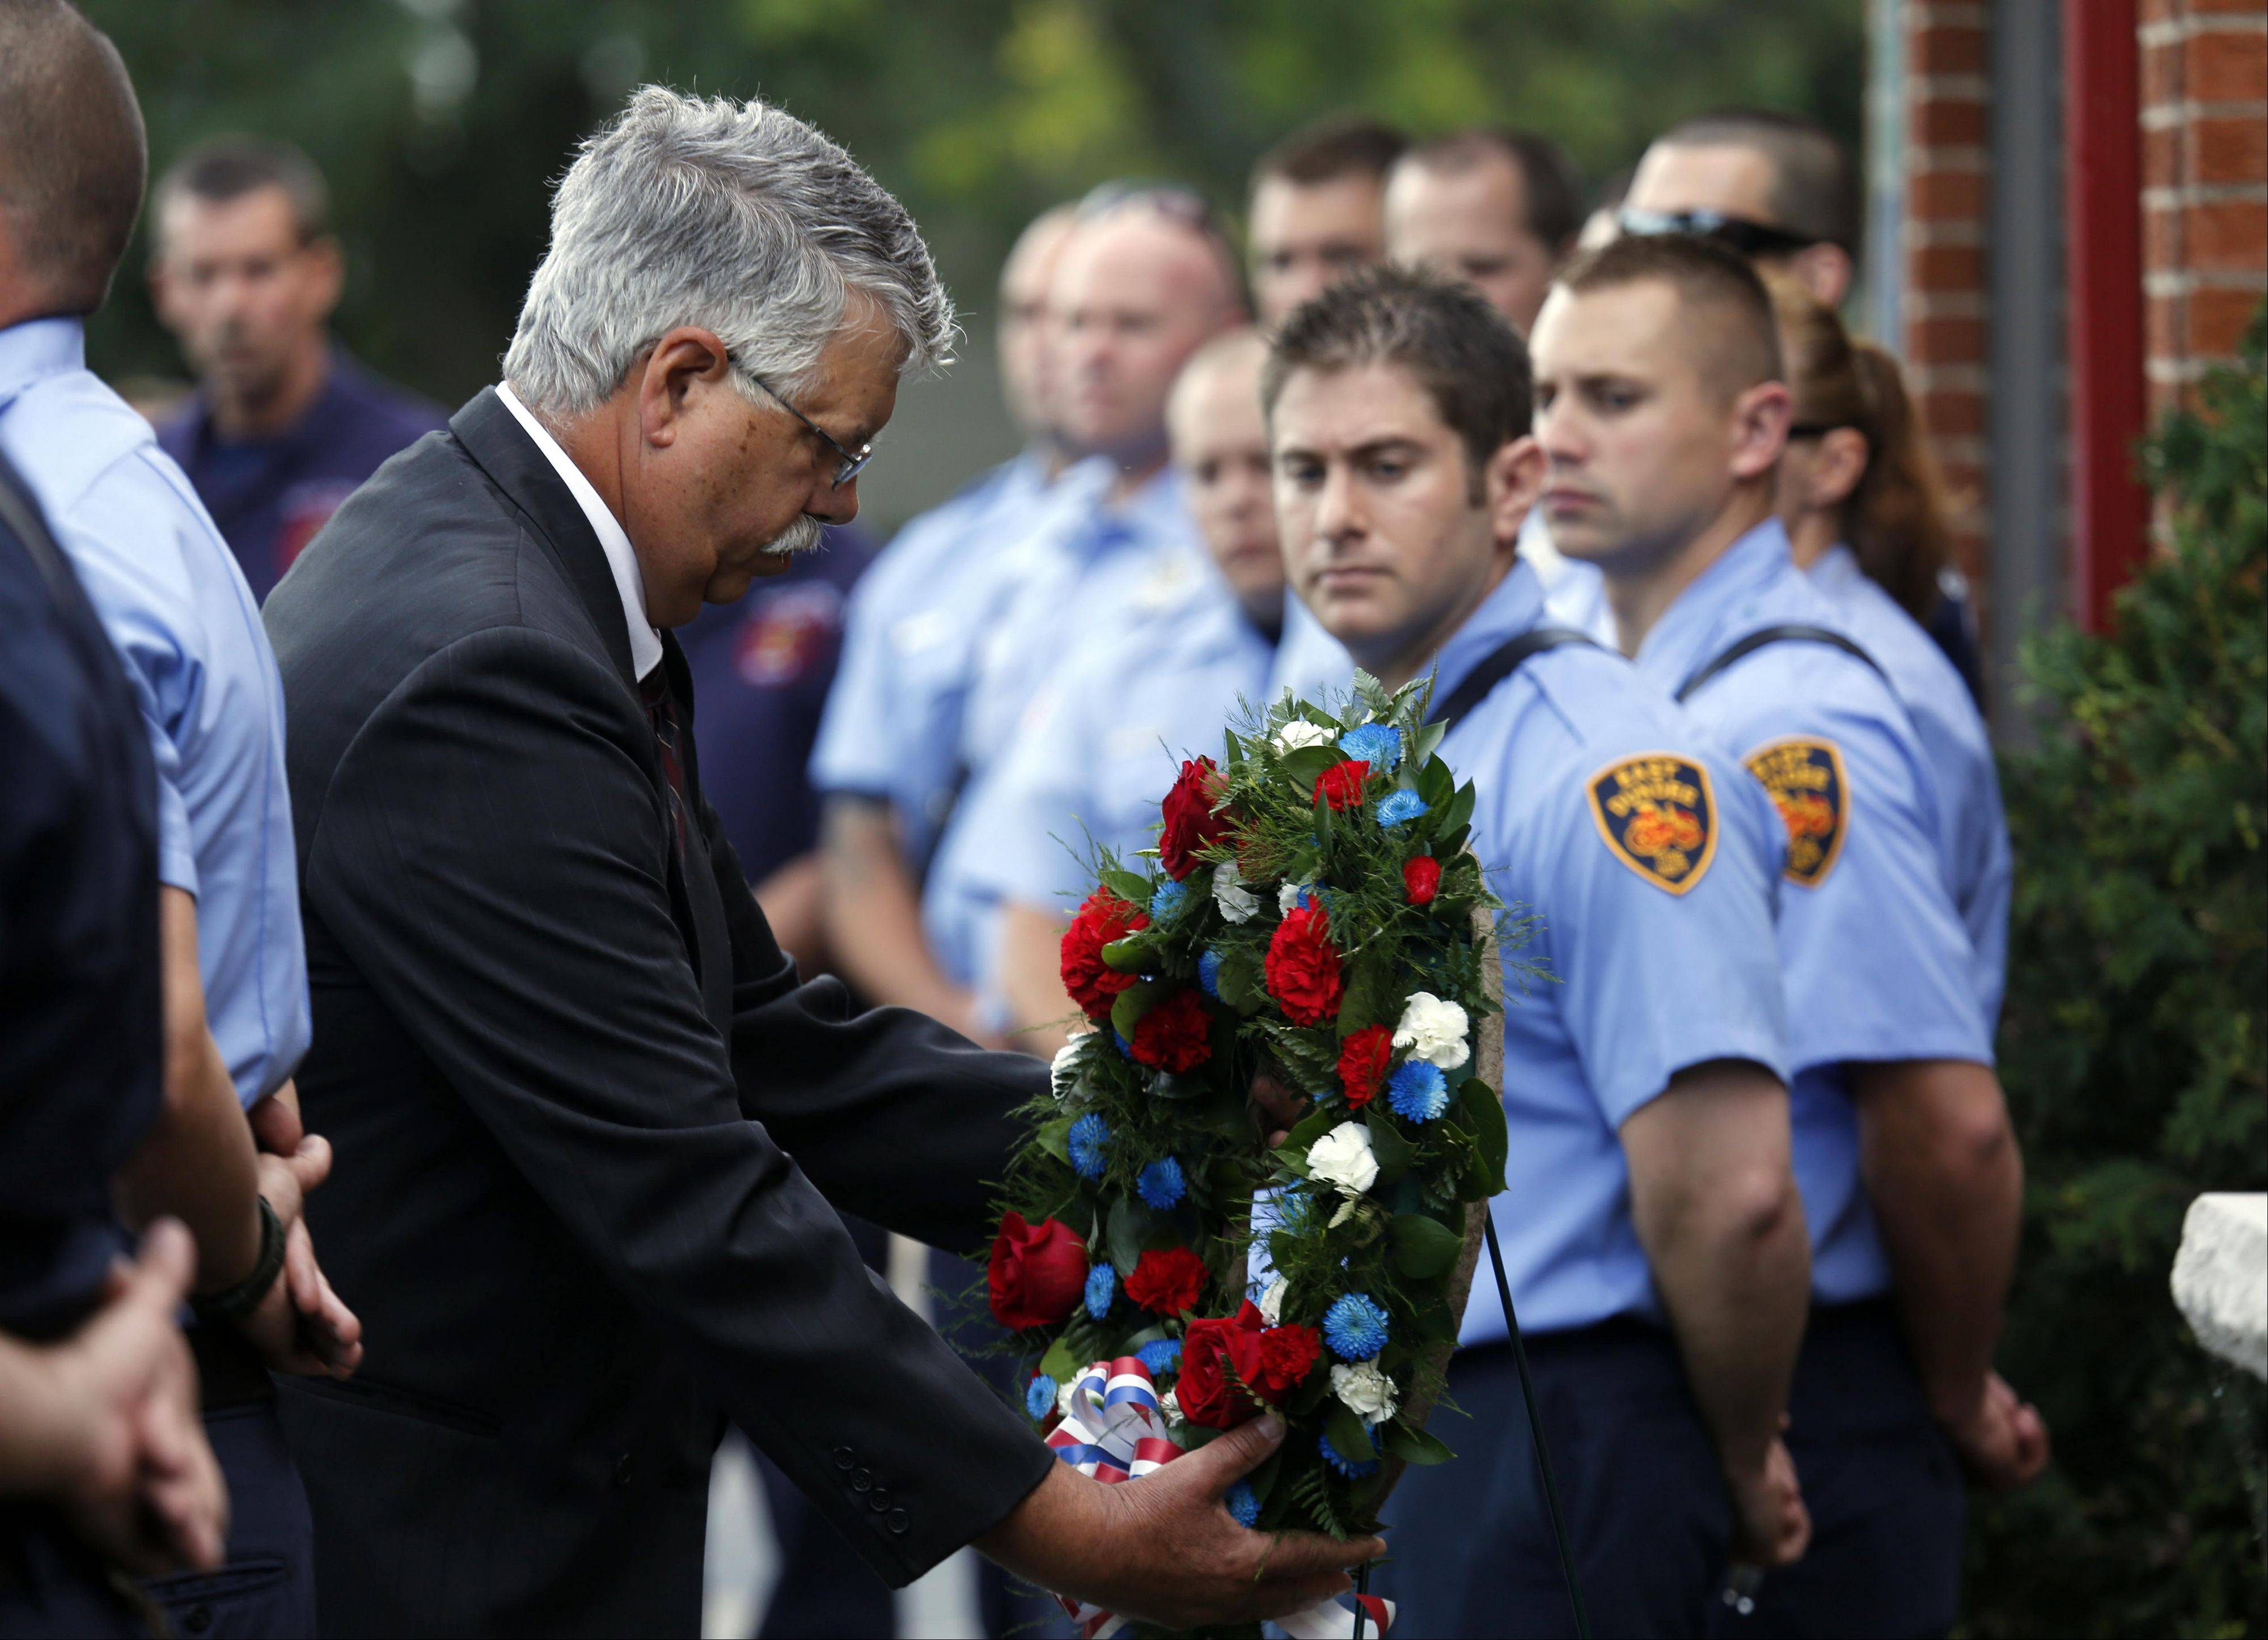 Suburbanites remember Sept. 11 victims